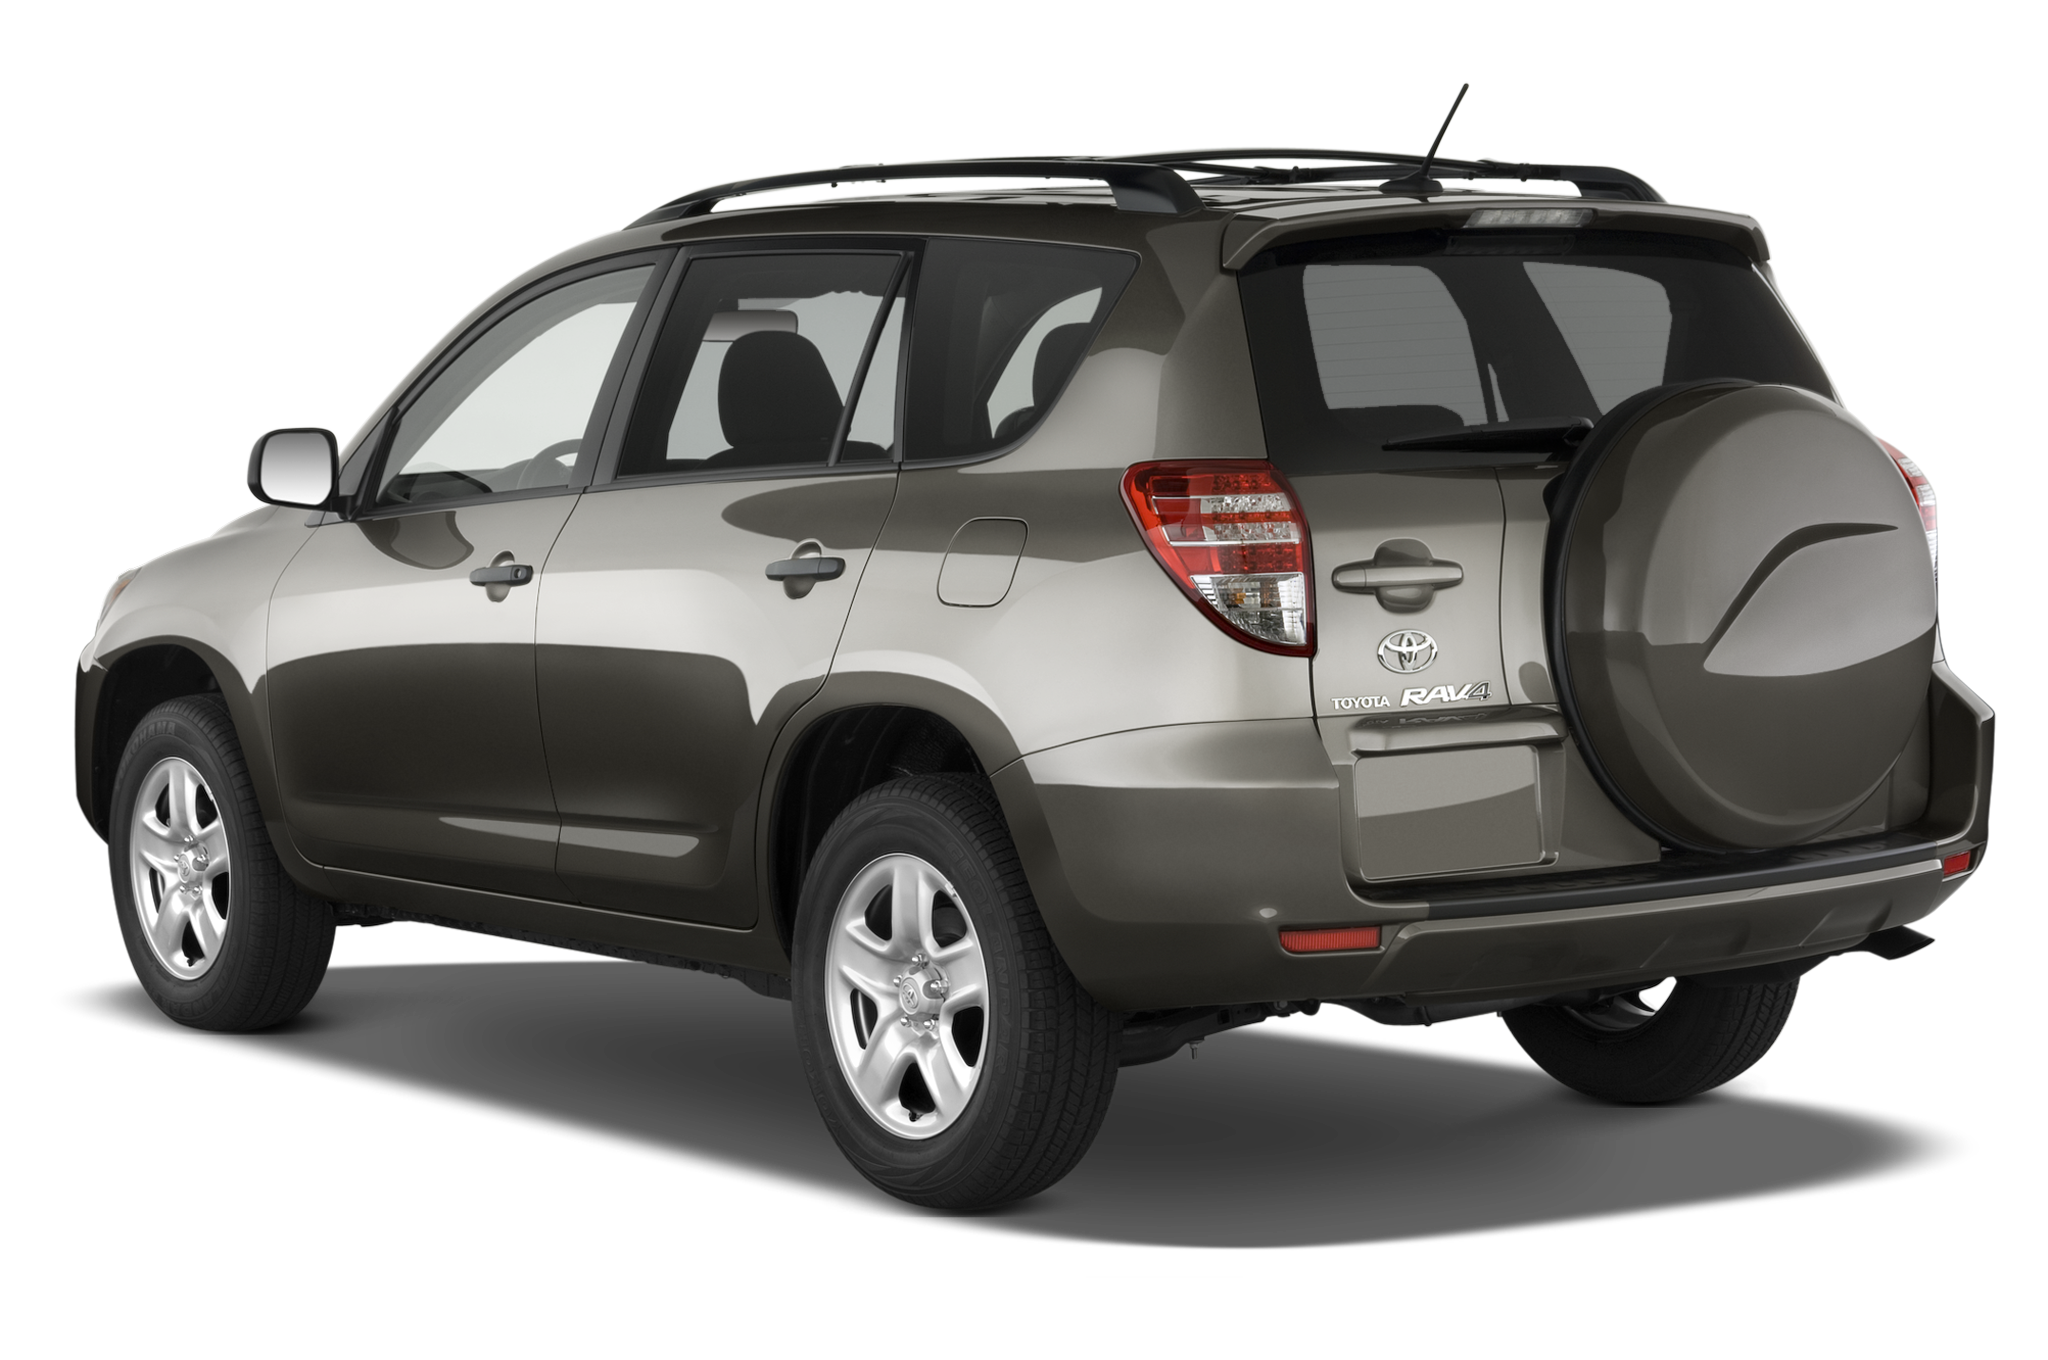 toyota 39 s upgrade value package on 2011 rav4 adds extra. Black Bedroom Furniture Sets. Home Design Ideas